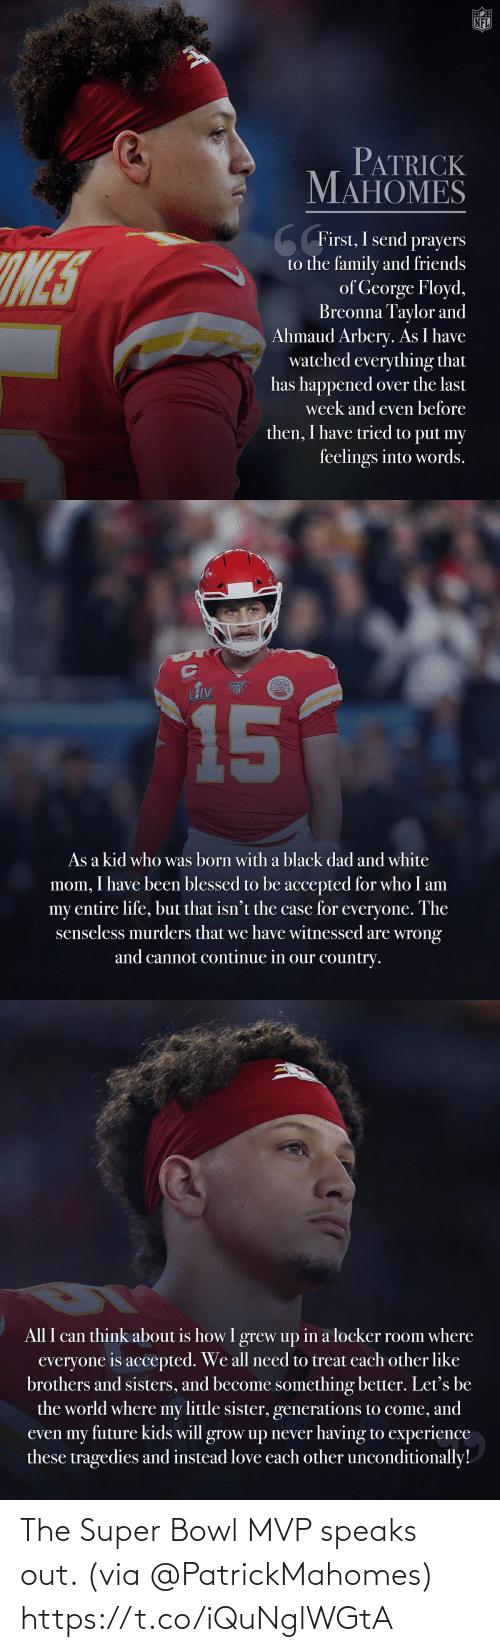 super: The Super Bowl MVP speaks out. (via @PatrickMahomes) https://t.co/iQuNglWGtA